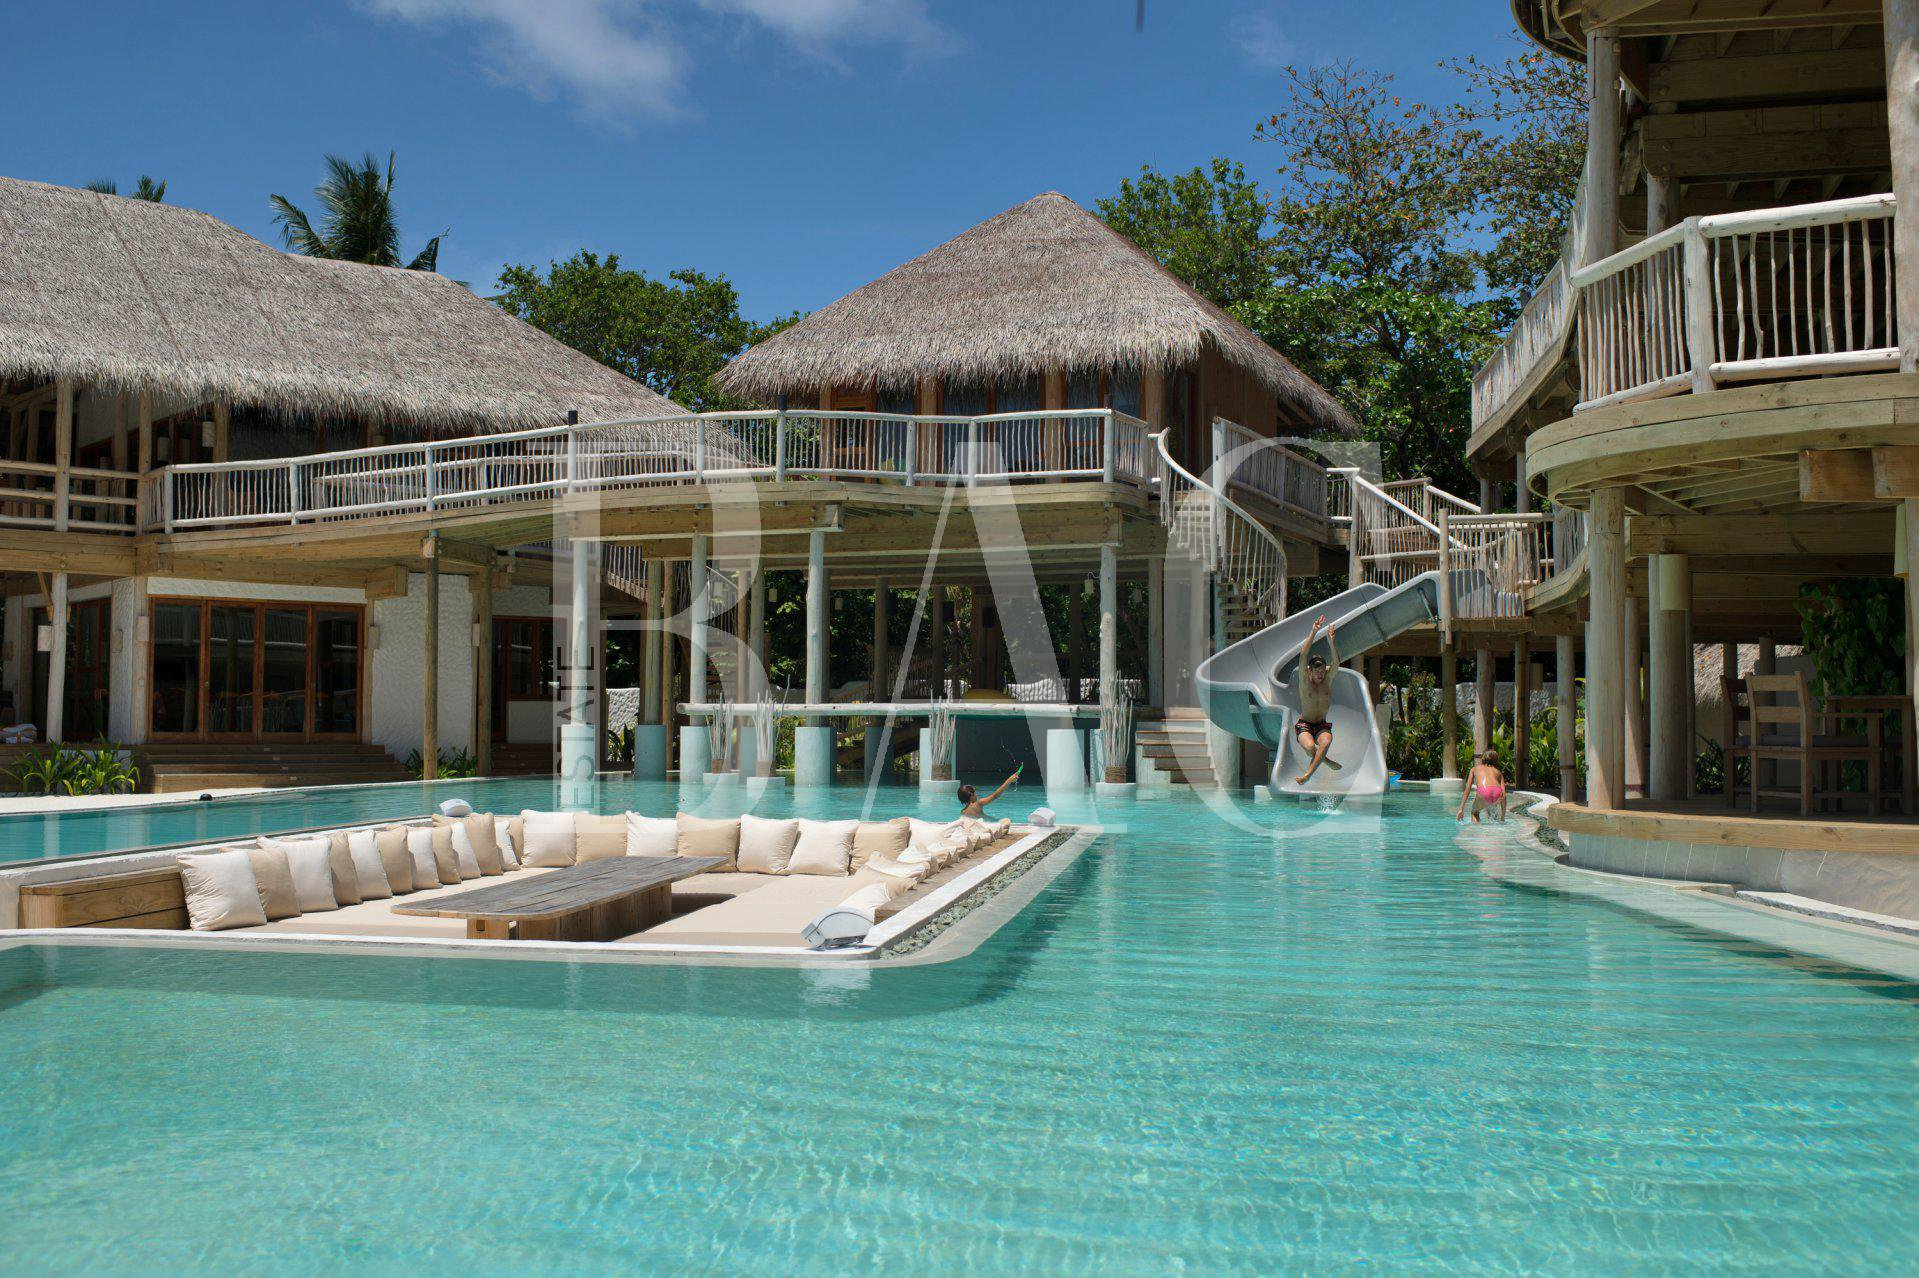 9 bedroom villa on an island in the Maldives